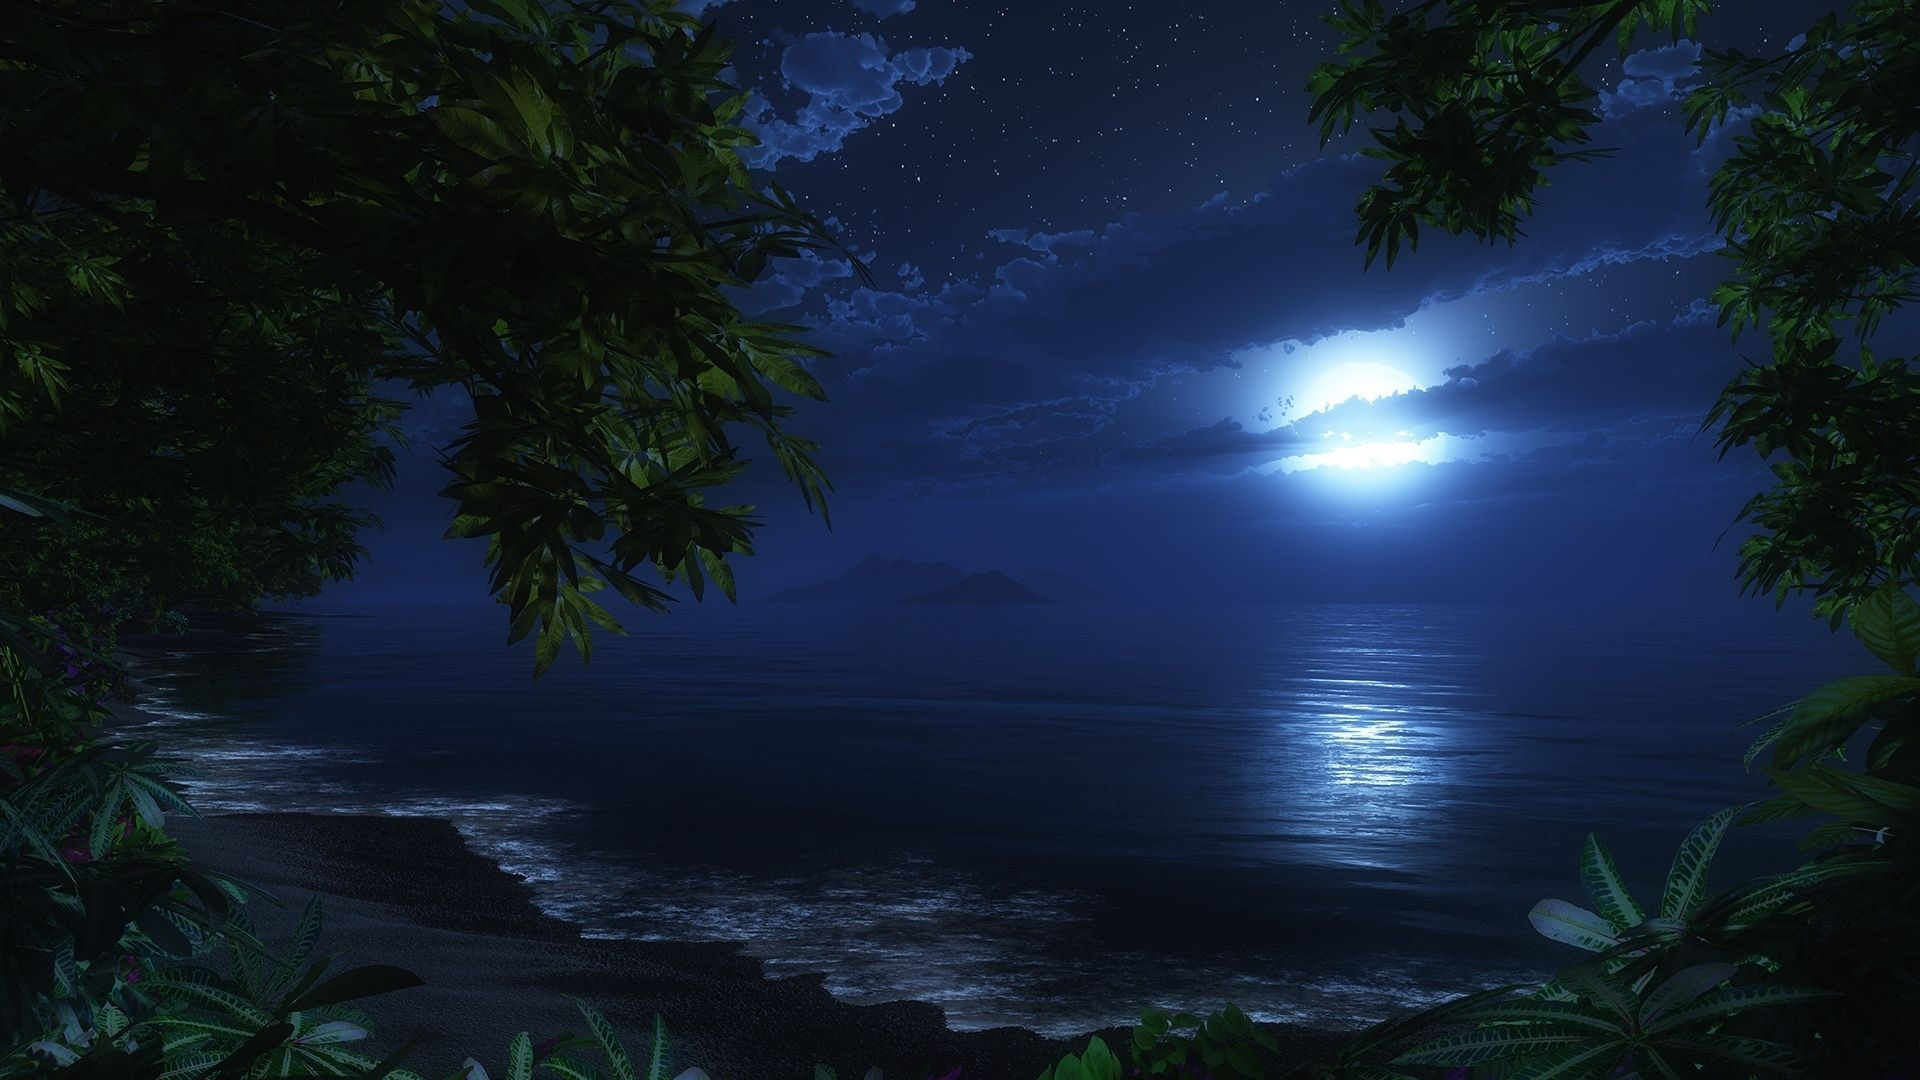 nature ocean beaches waves sky night trees tropical jungle ...